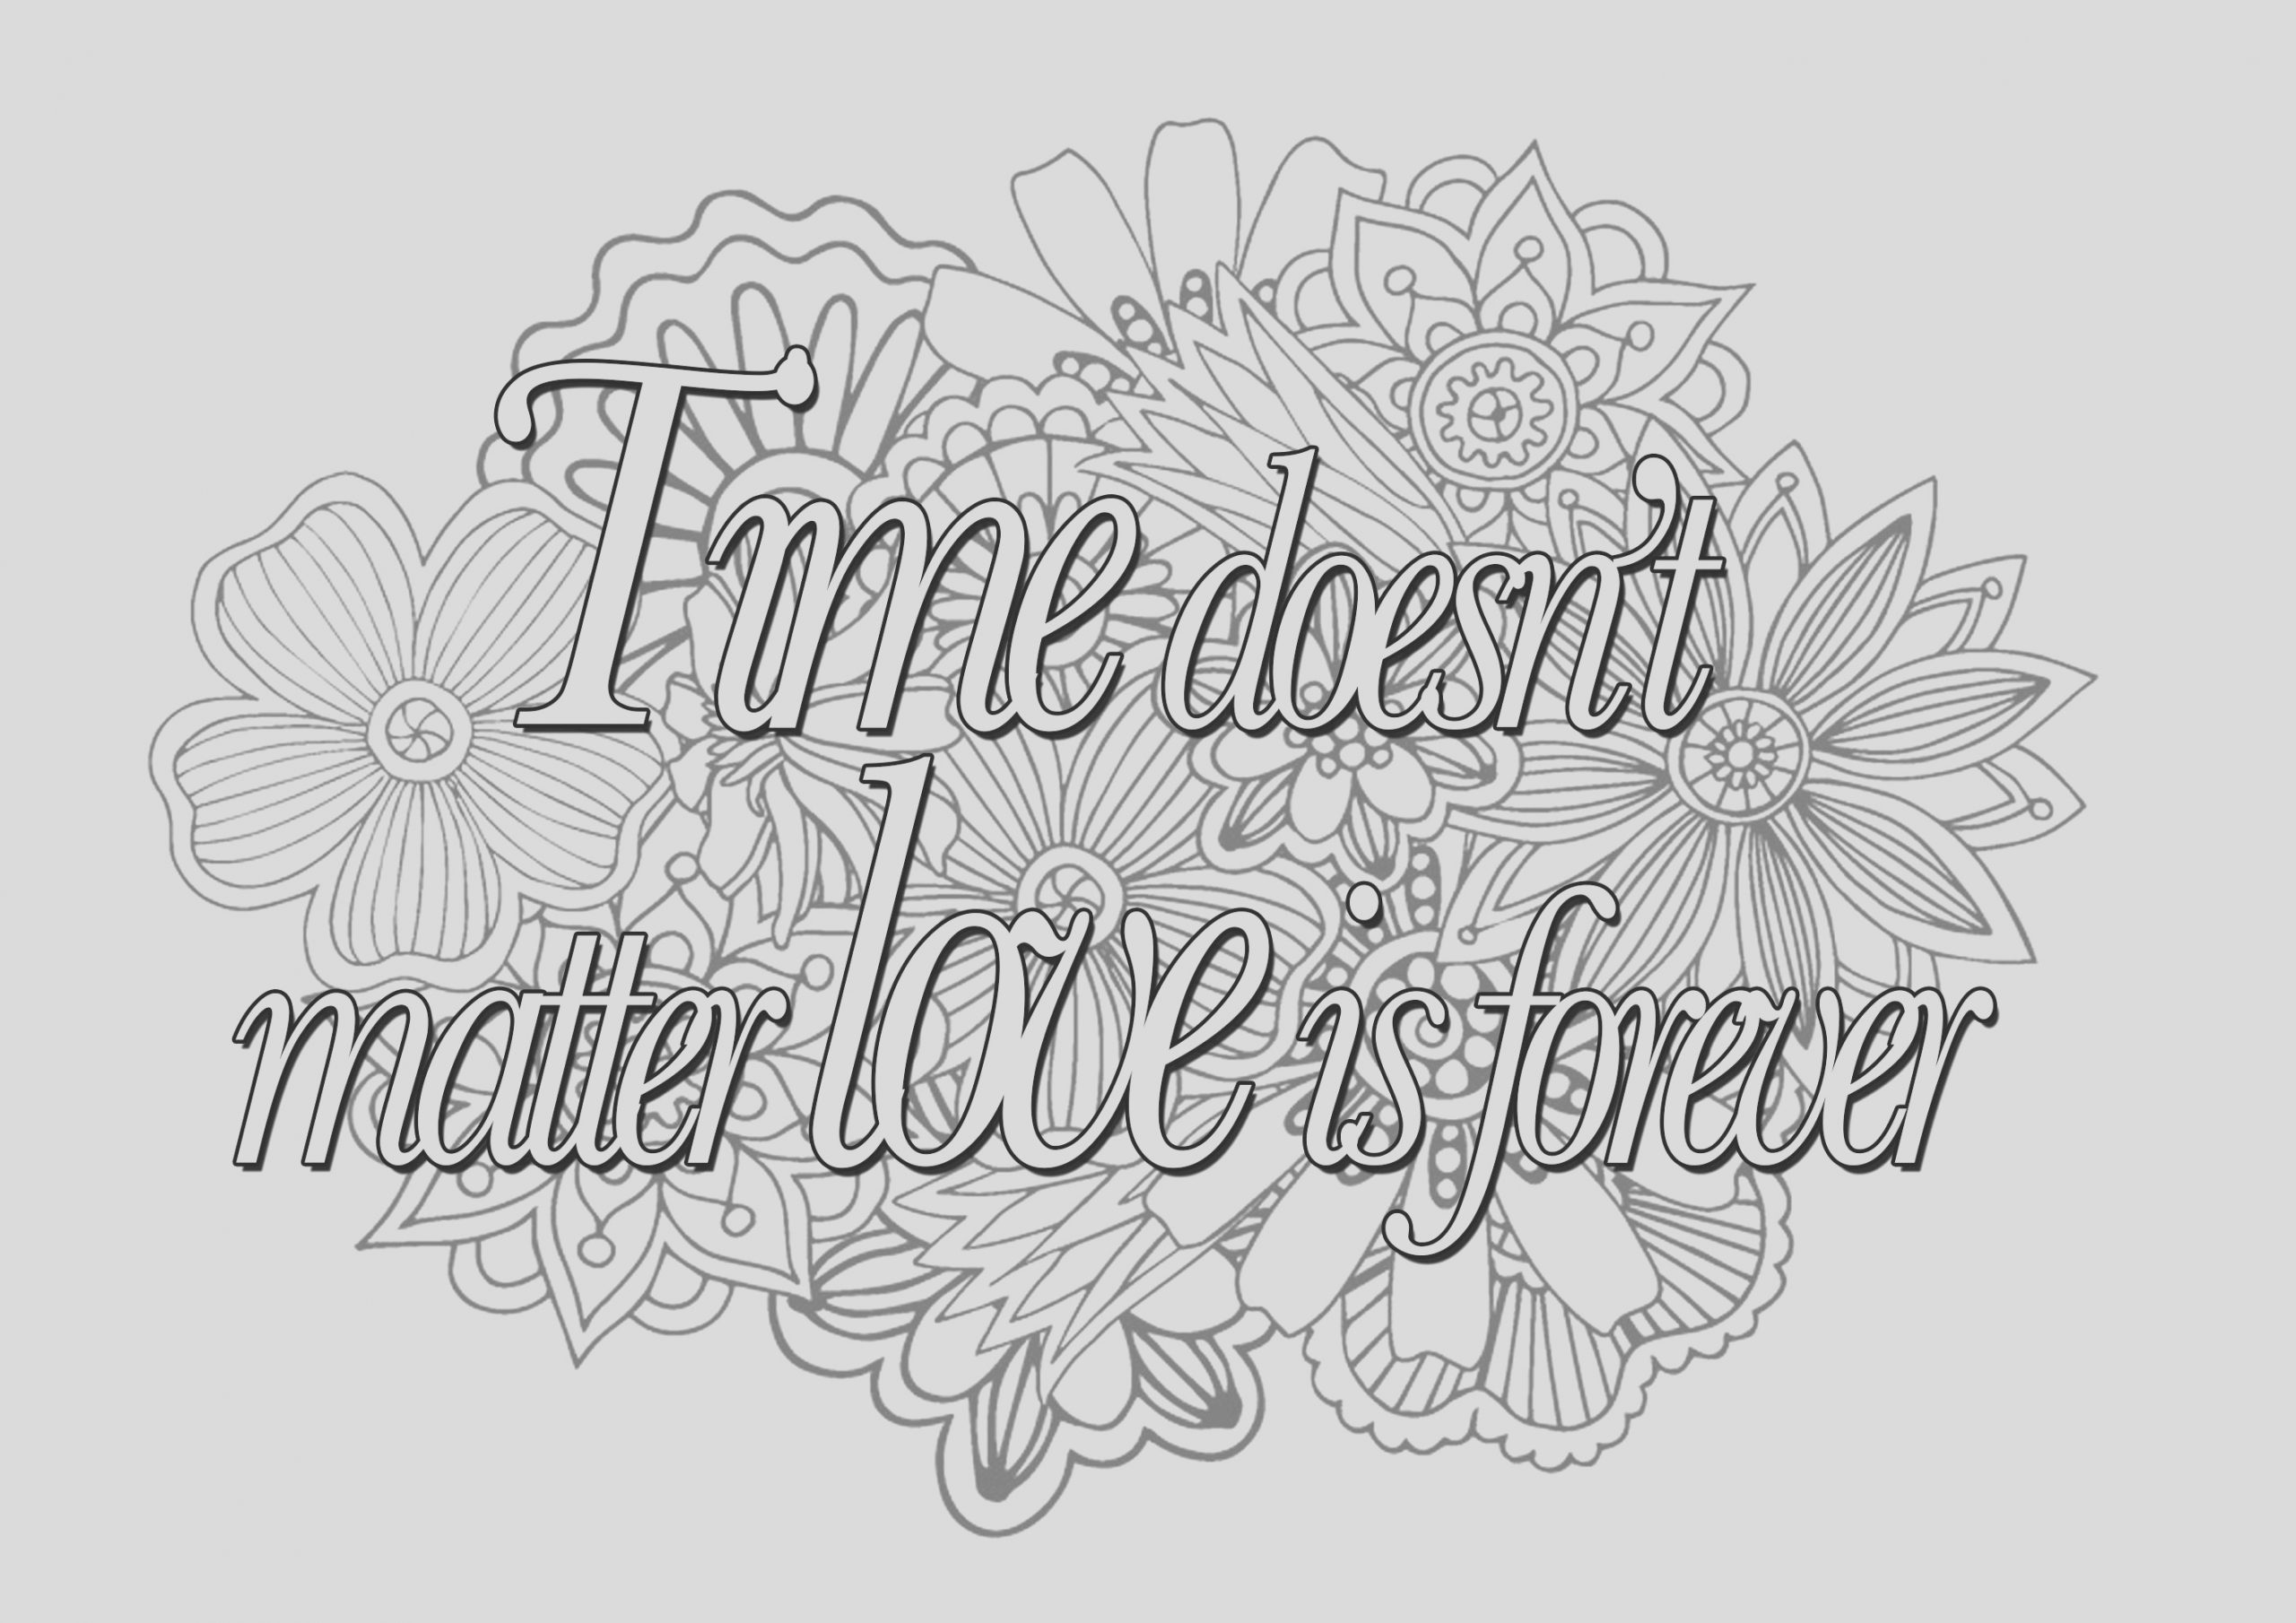 quotes image=quotes coloring quote time doesnt matter love is forever 1